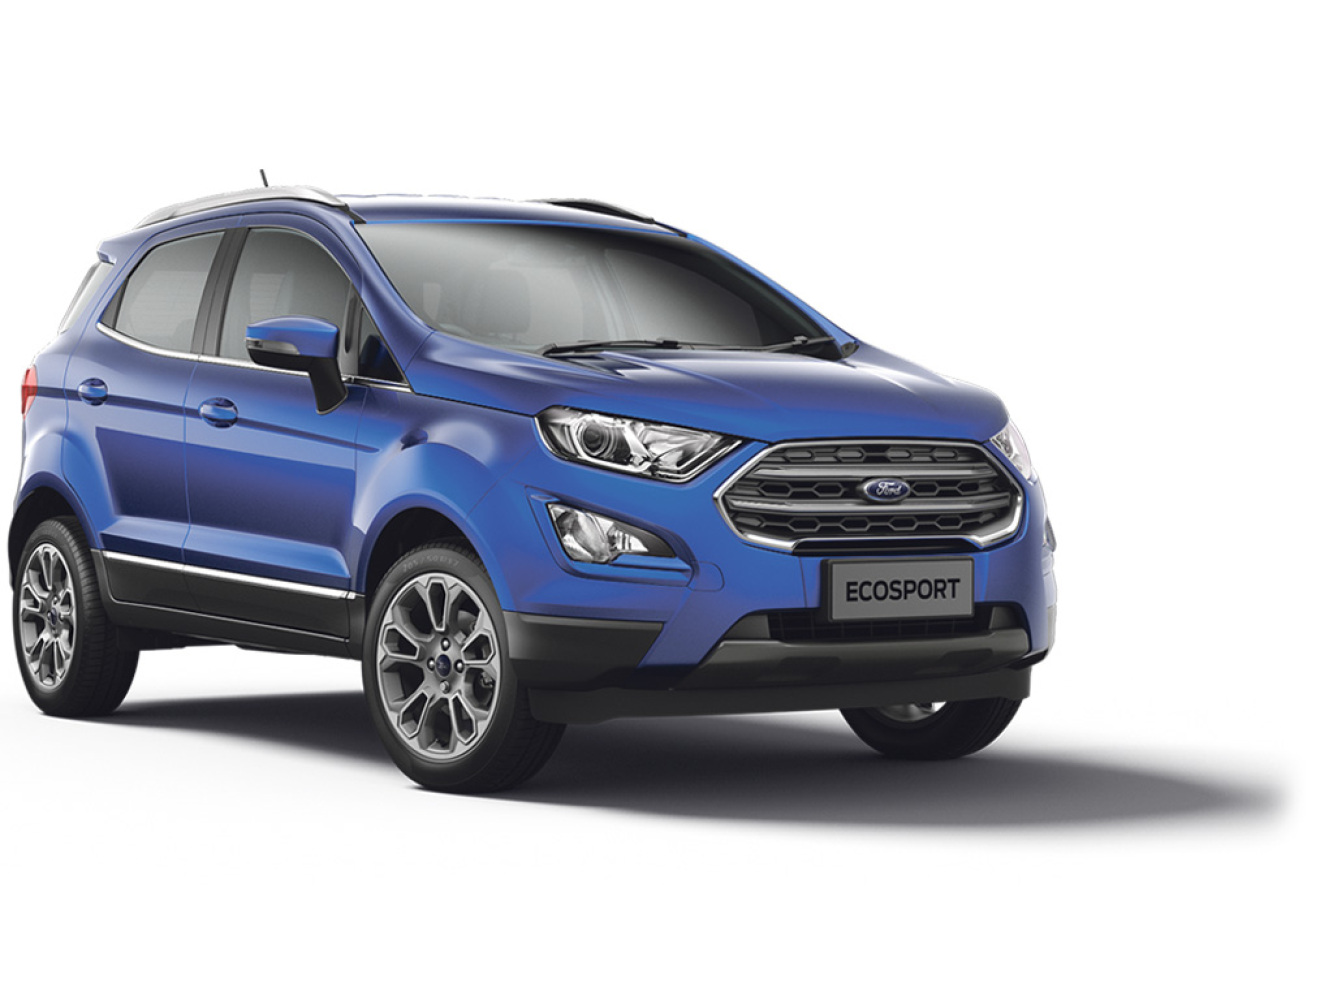 new ford ecosport 1 0 ecoboost 125 titanium 5dr petrol. Black Bedroom Furniture Sets. Home Design Ideas